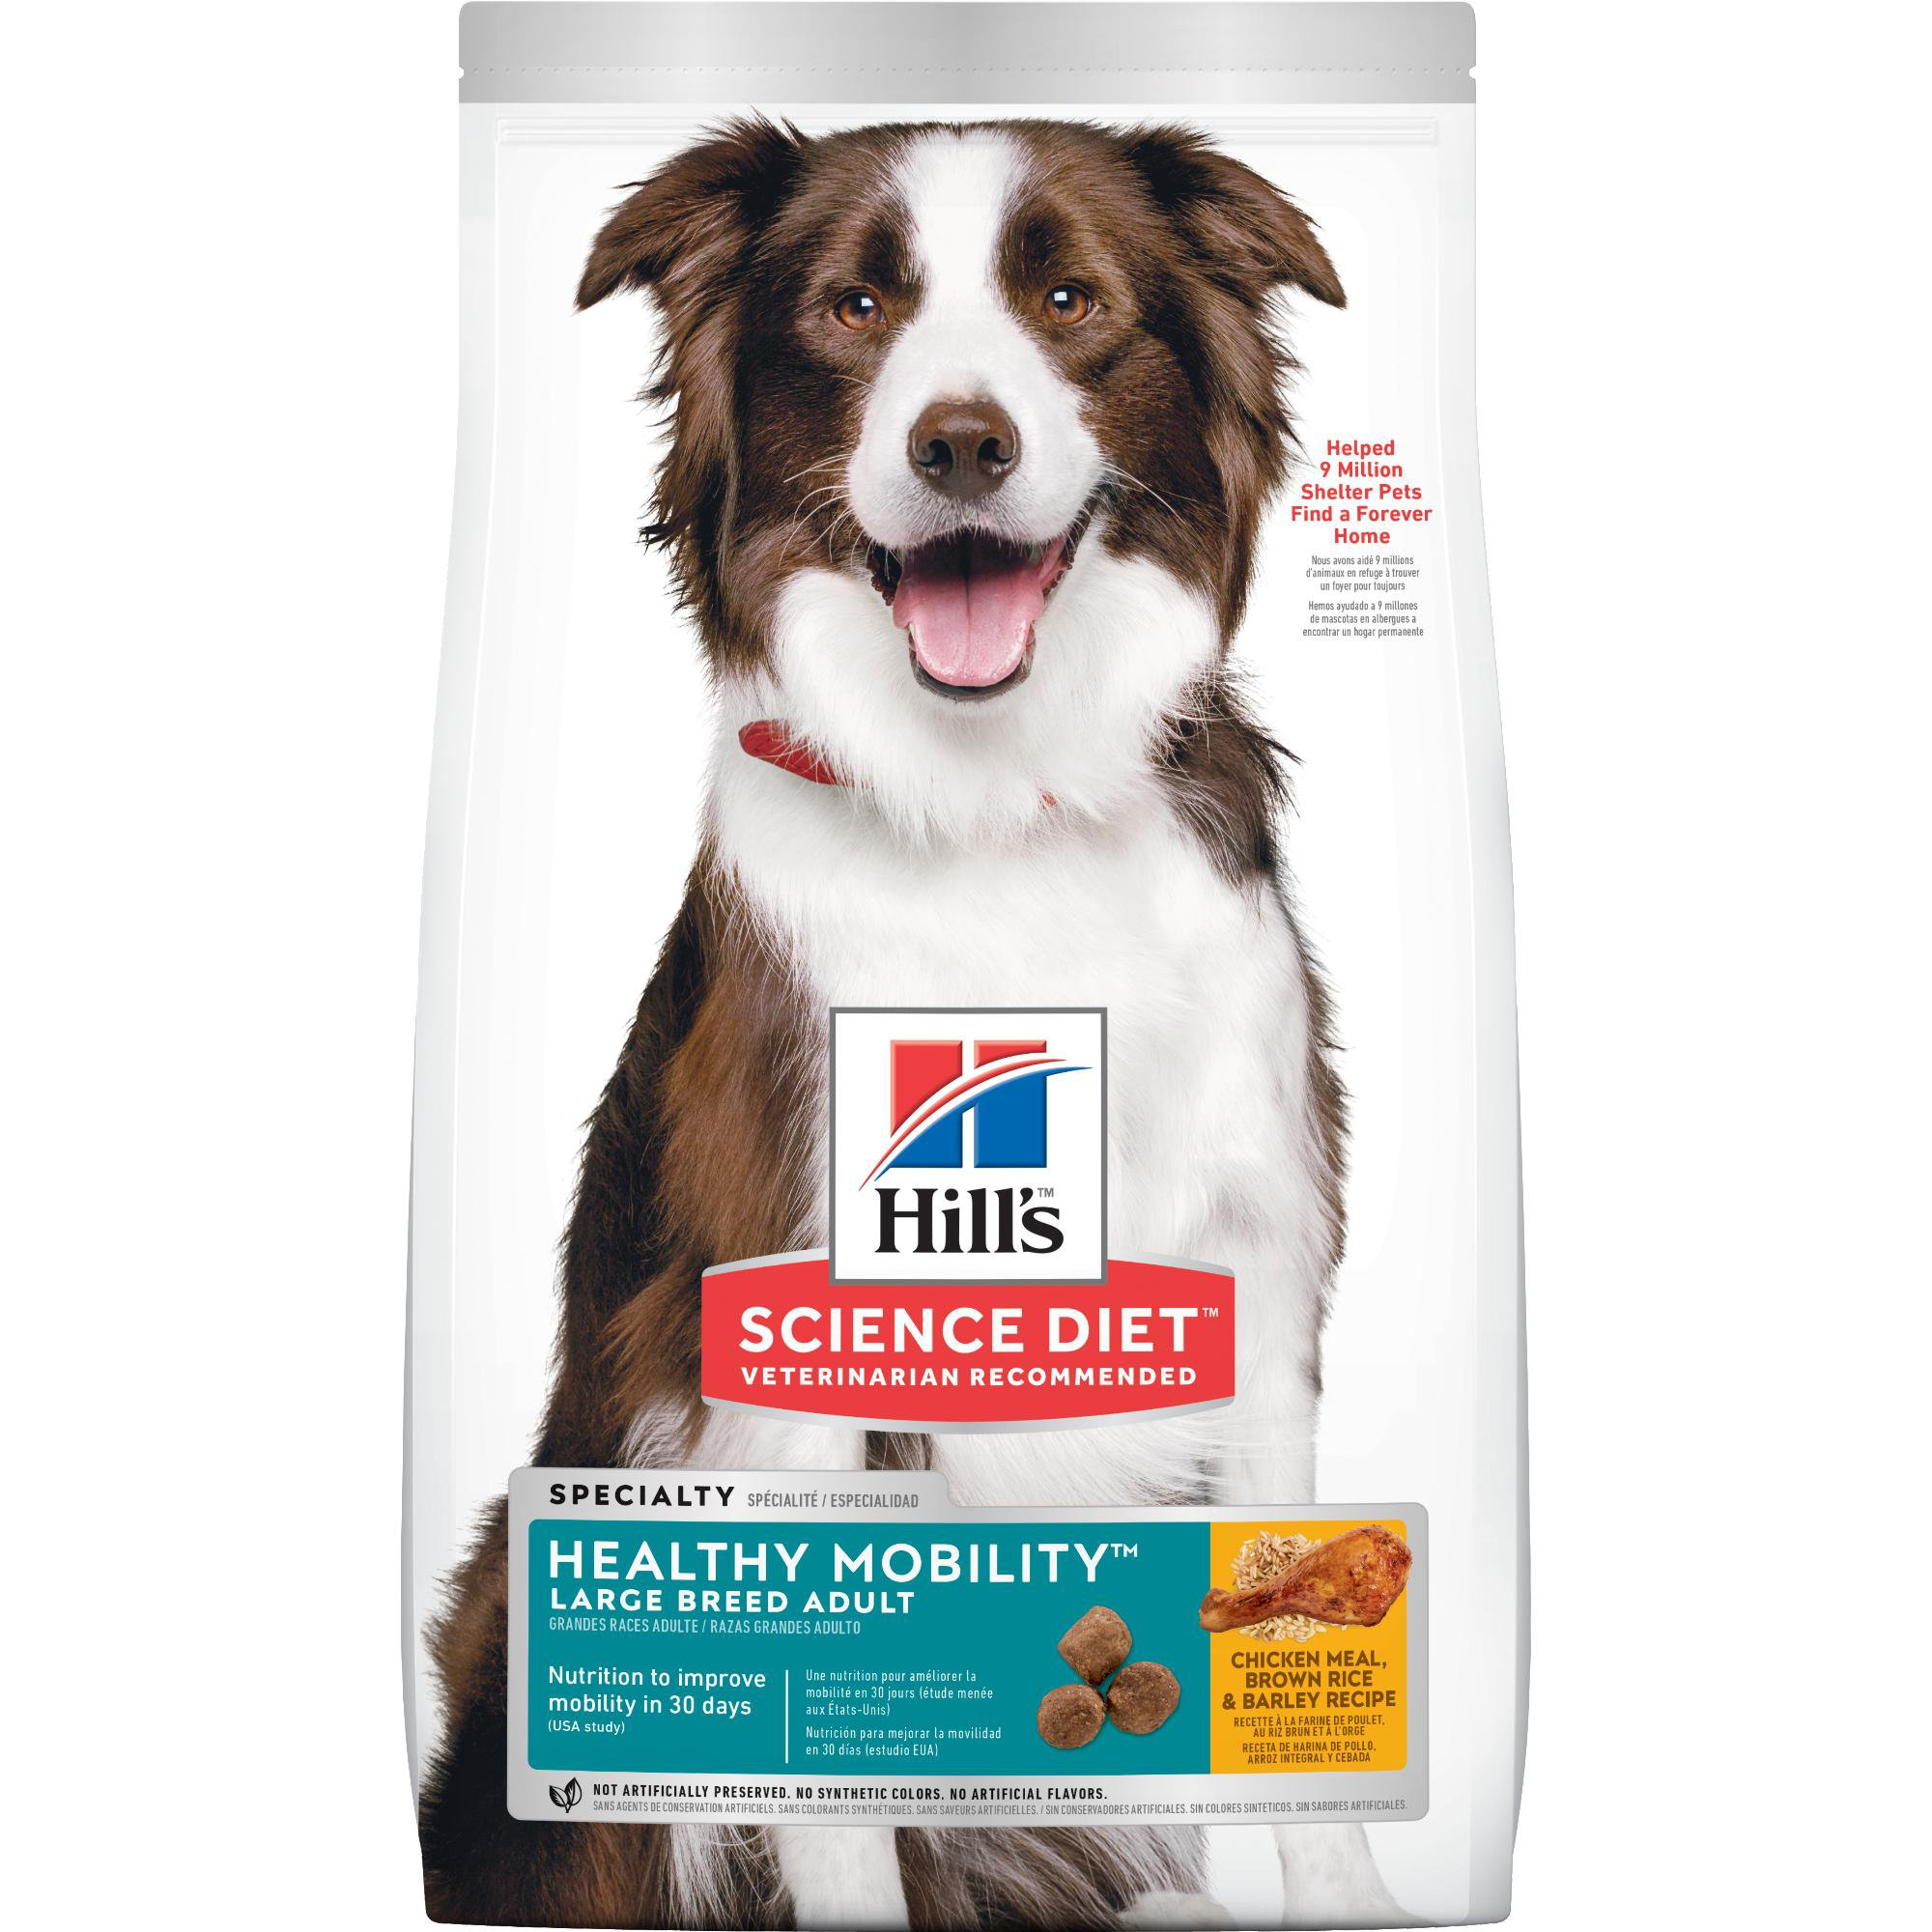 Hill's Science Diet Healthy Mobility Large Breed Adult Dog Food